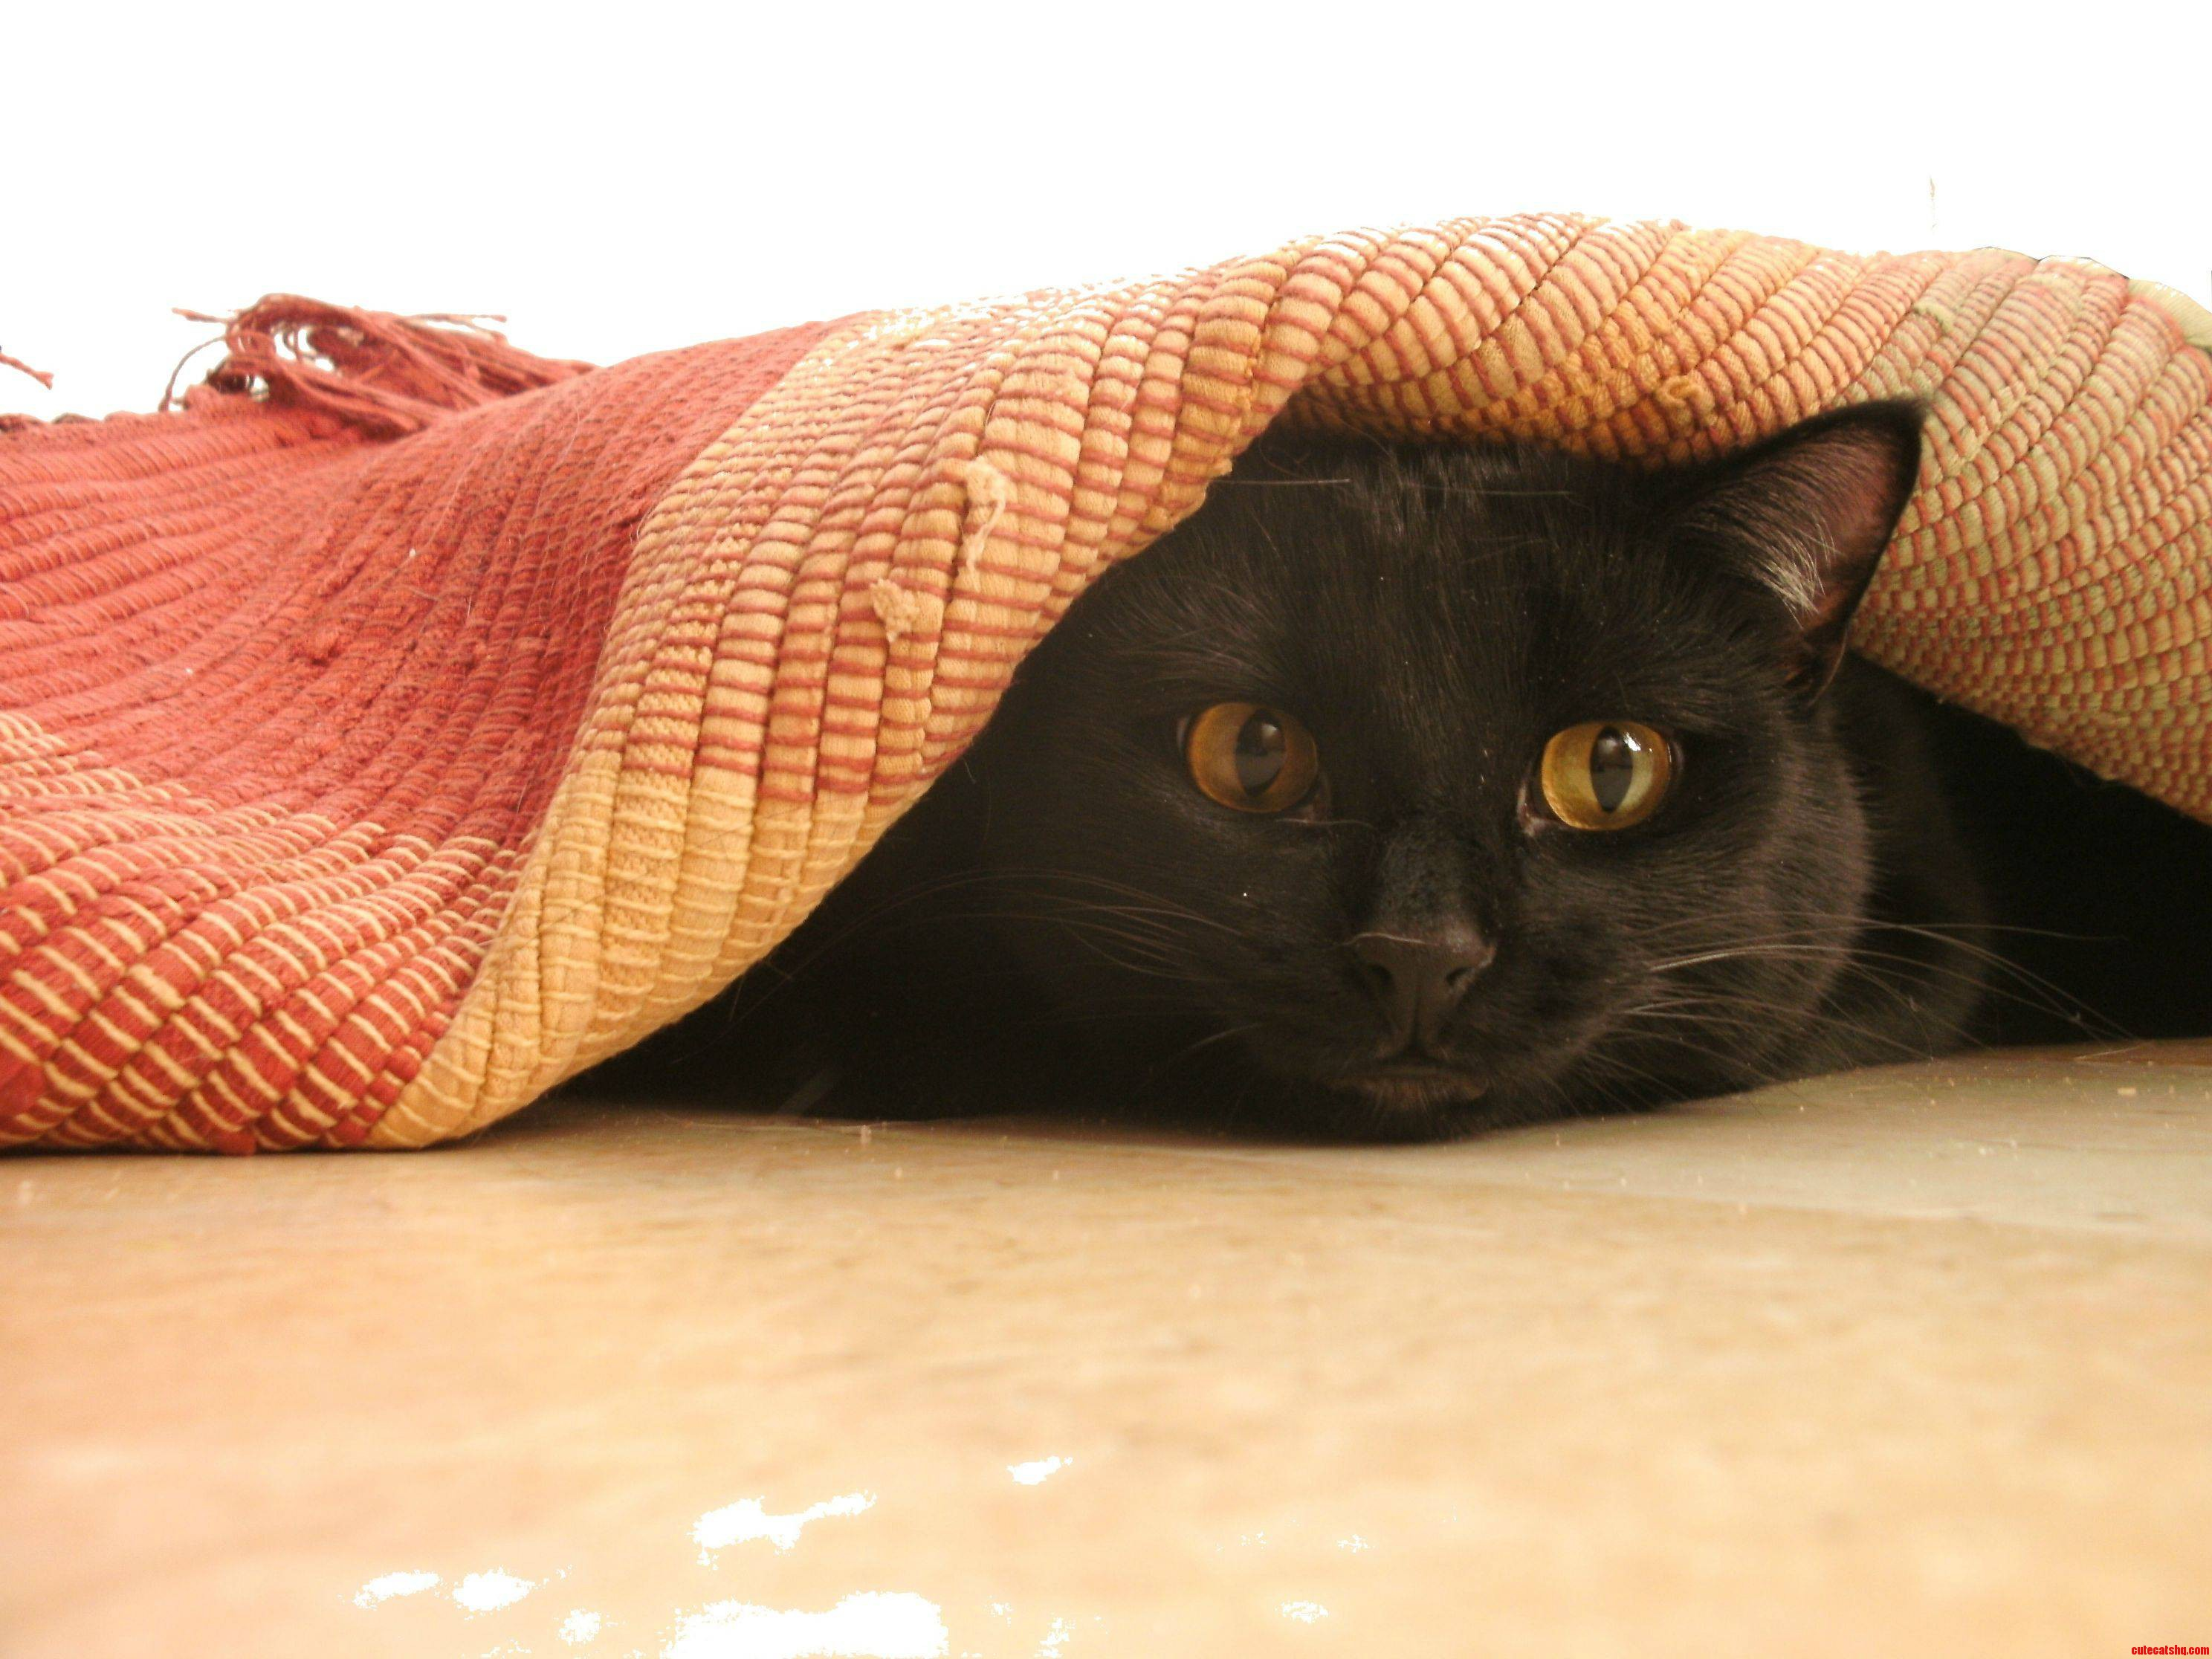 My Exs Cat  Zinfandel. He Always Thought He Was Sneaky Hiding Under Rugs.